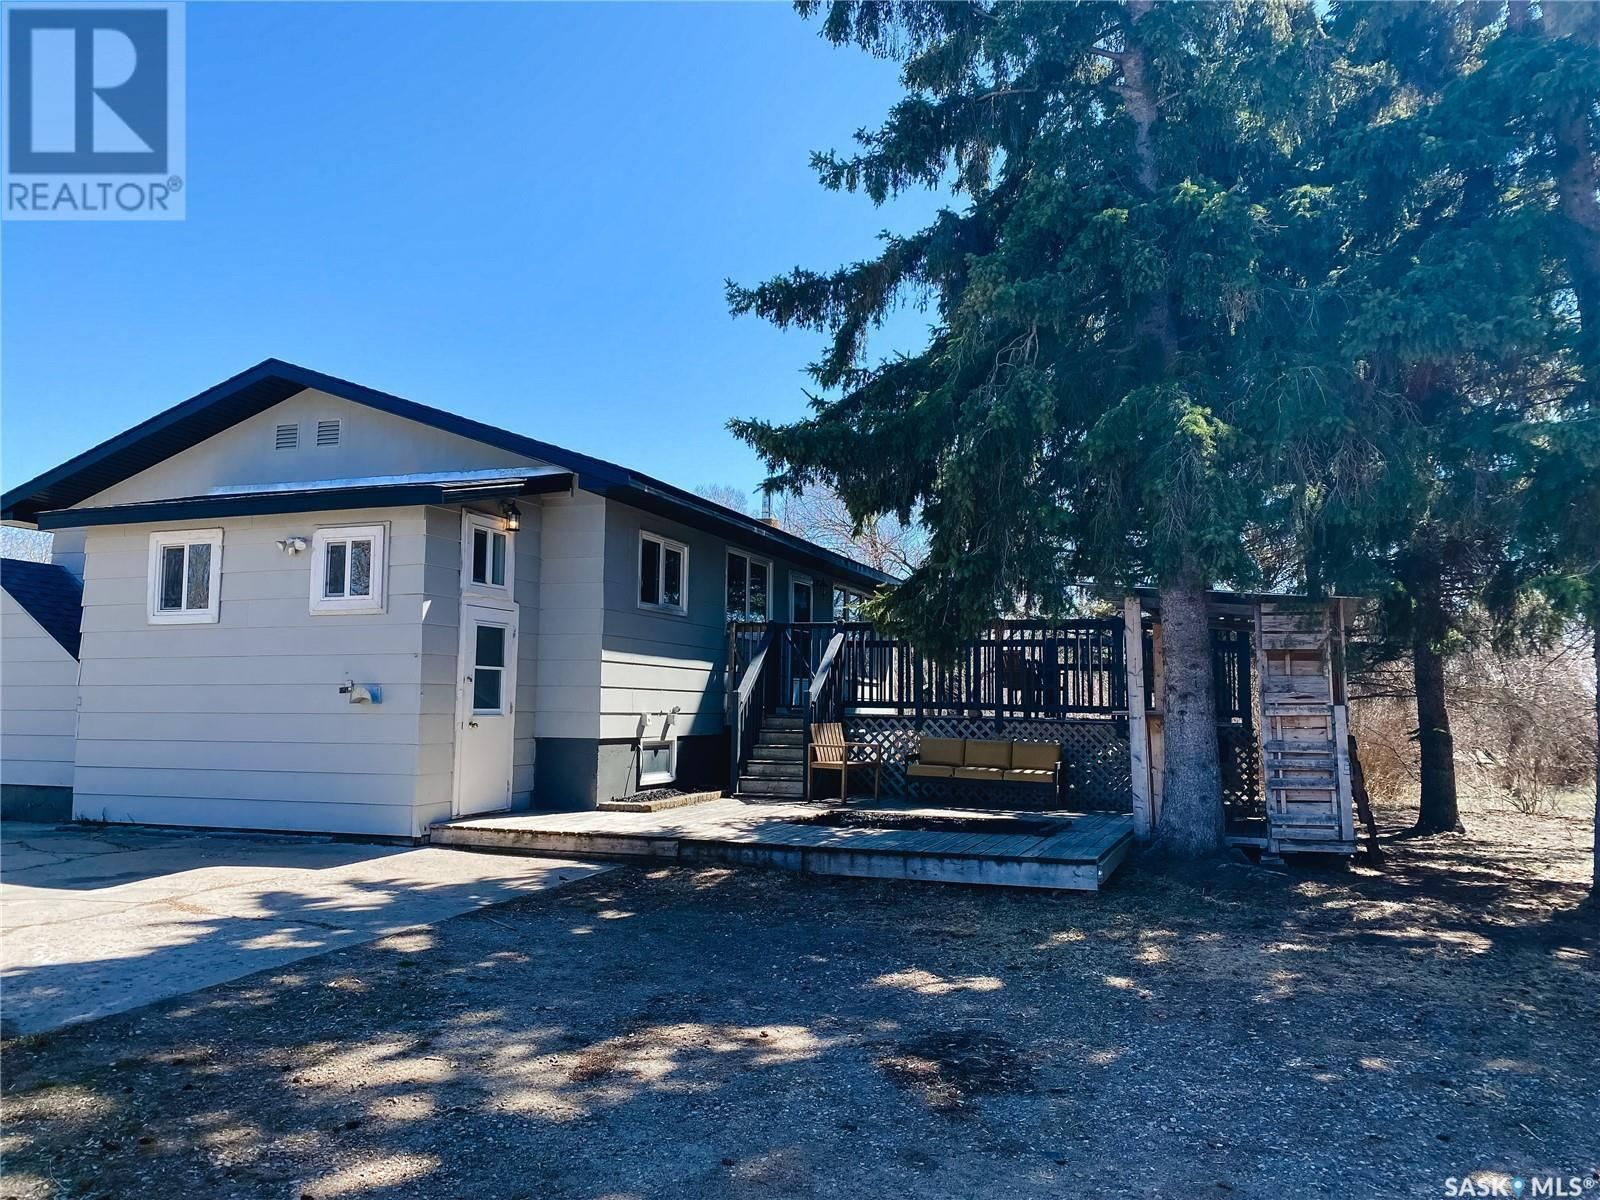 Main Photo: 818 Lempereur RD in Buckland Rm No. 491: House for sale : MLS®# SK852592